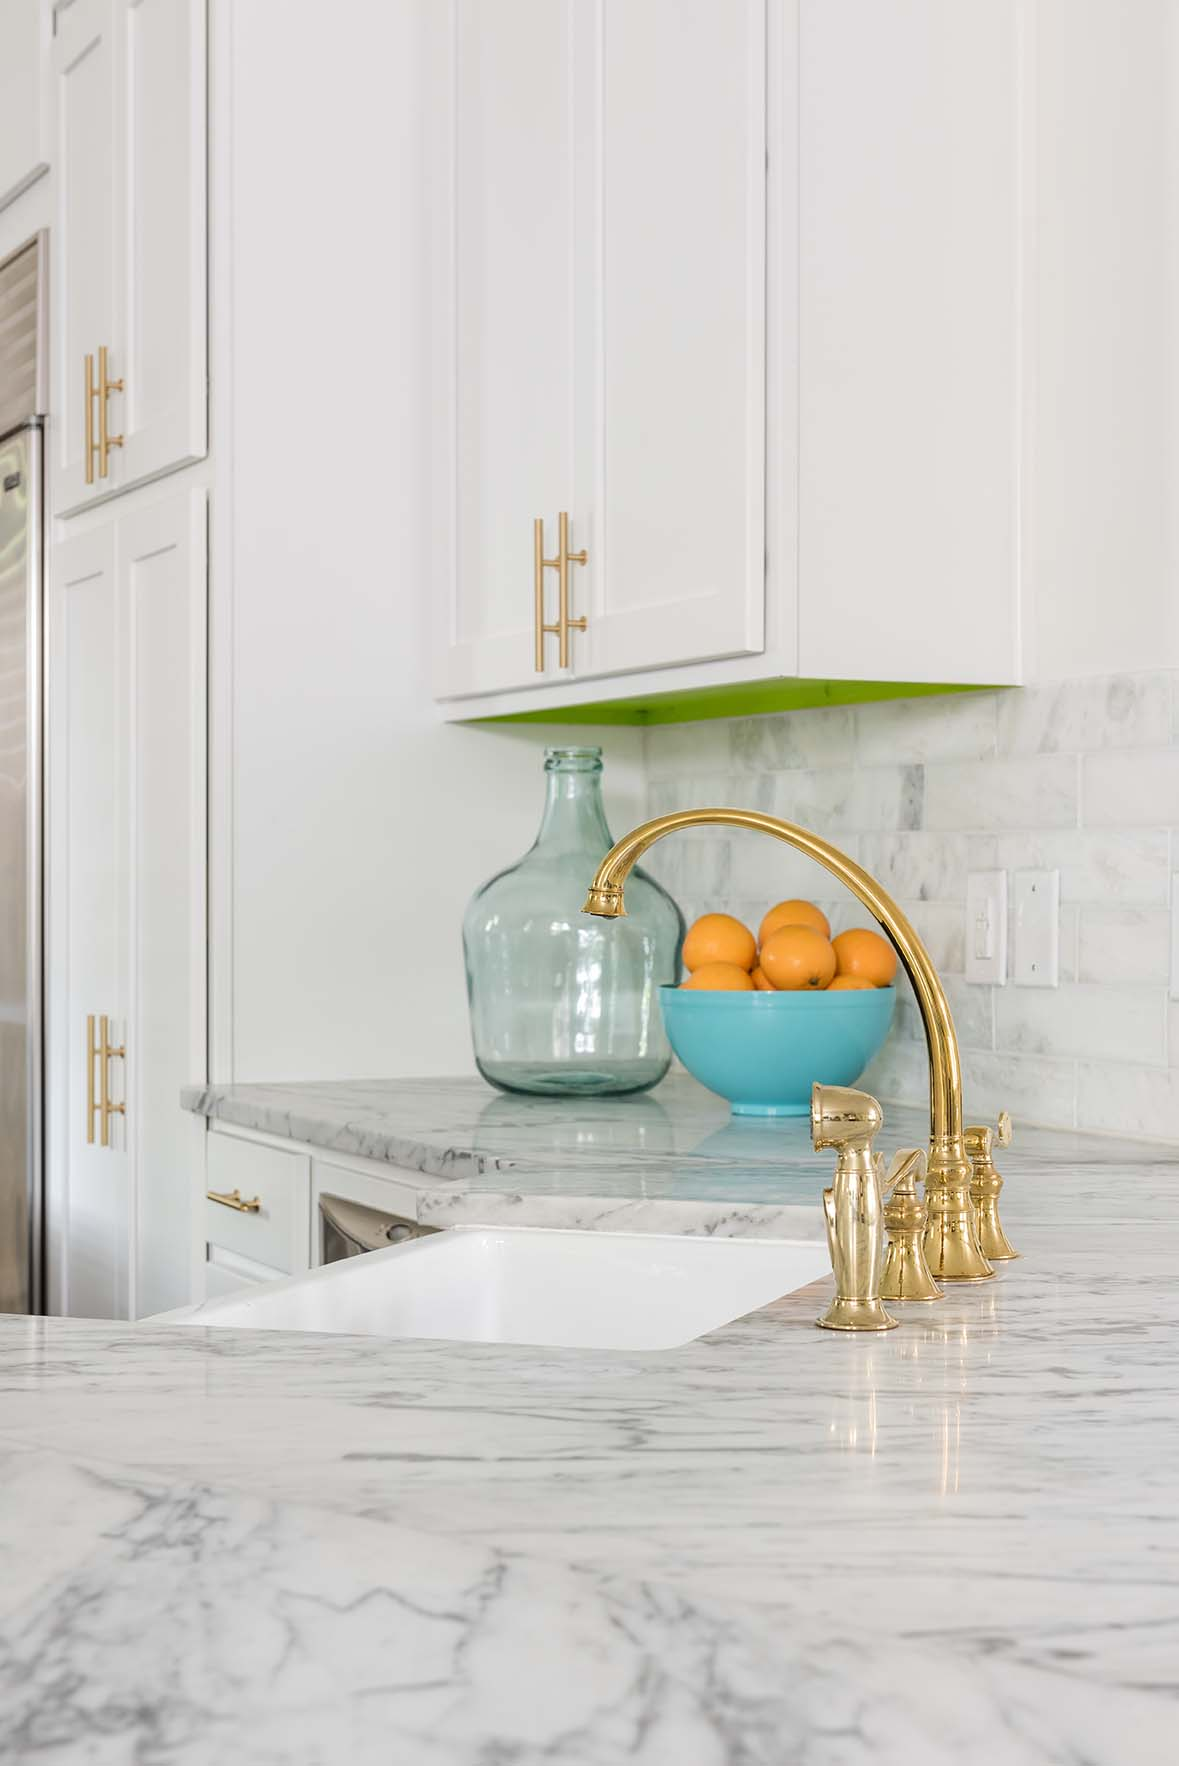 Kitchen Sinks Dallas Project tulip kitchen ml interiors group dallas texas michelle white kitchen with gold hardware marble countertops and marble subway tile backsplash ml workwithnaturefo